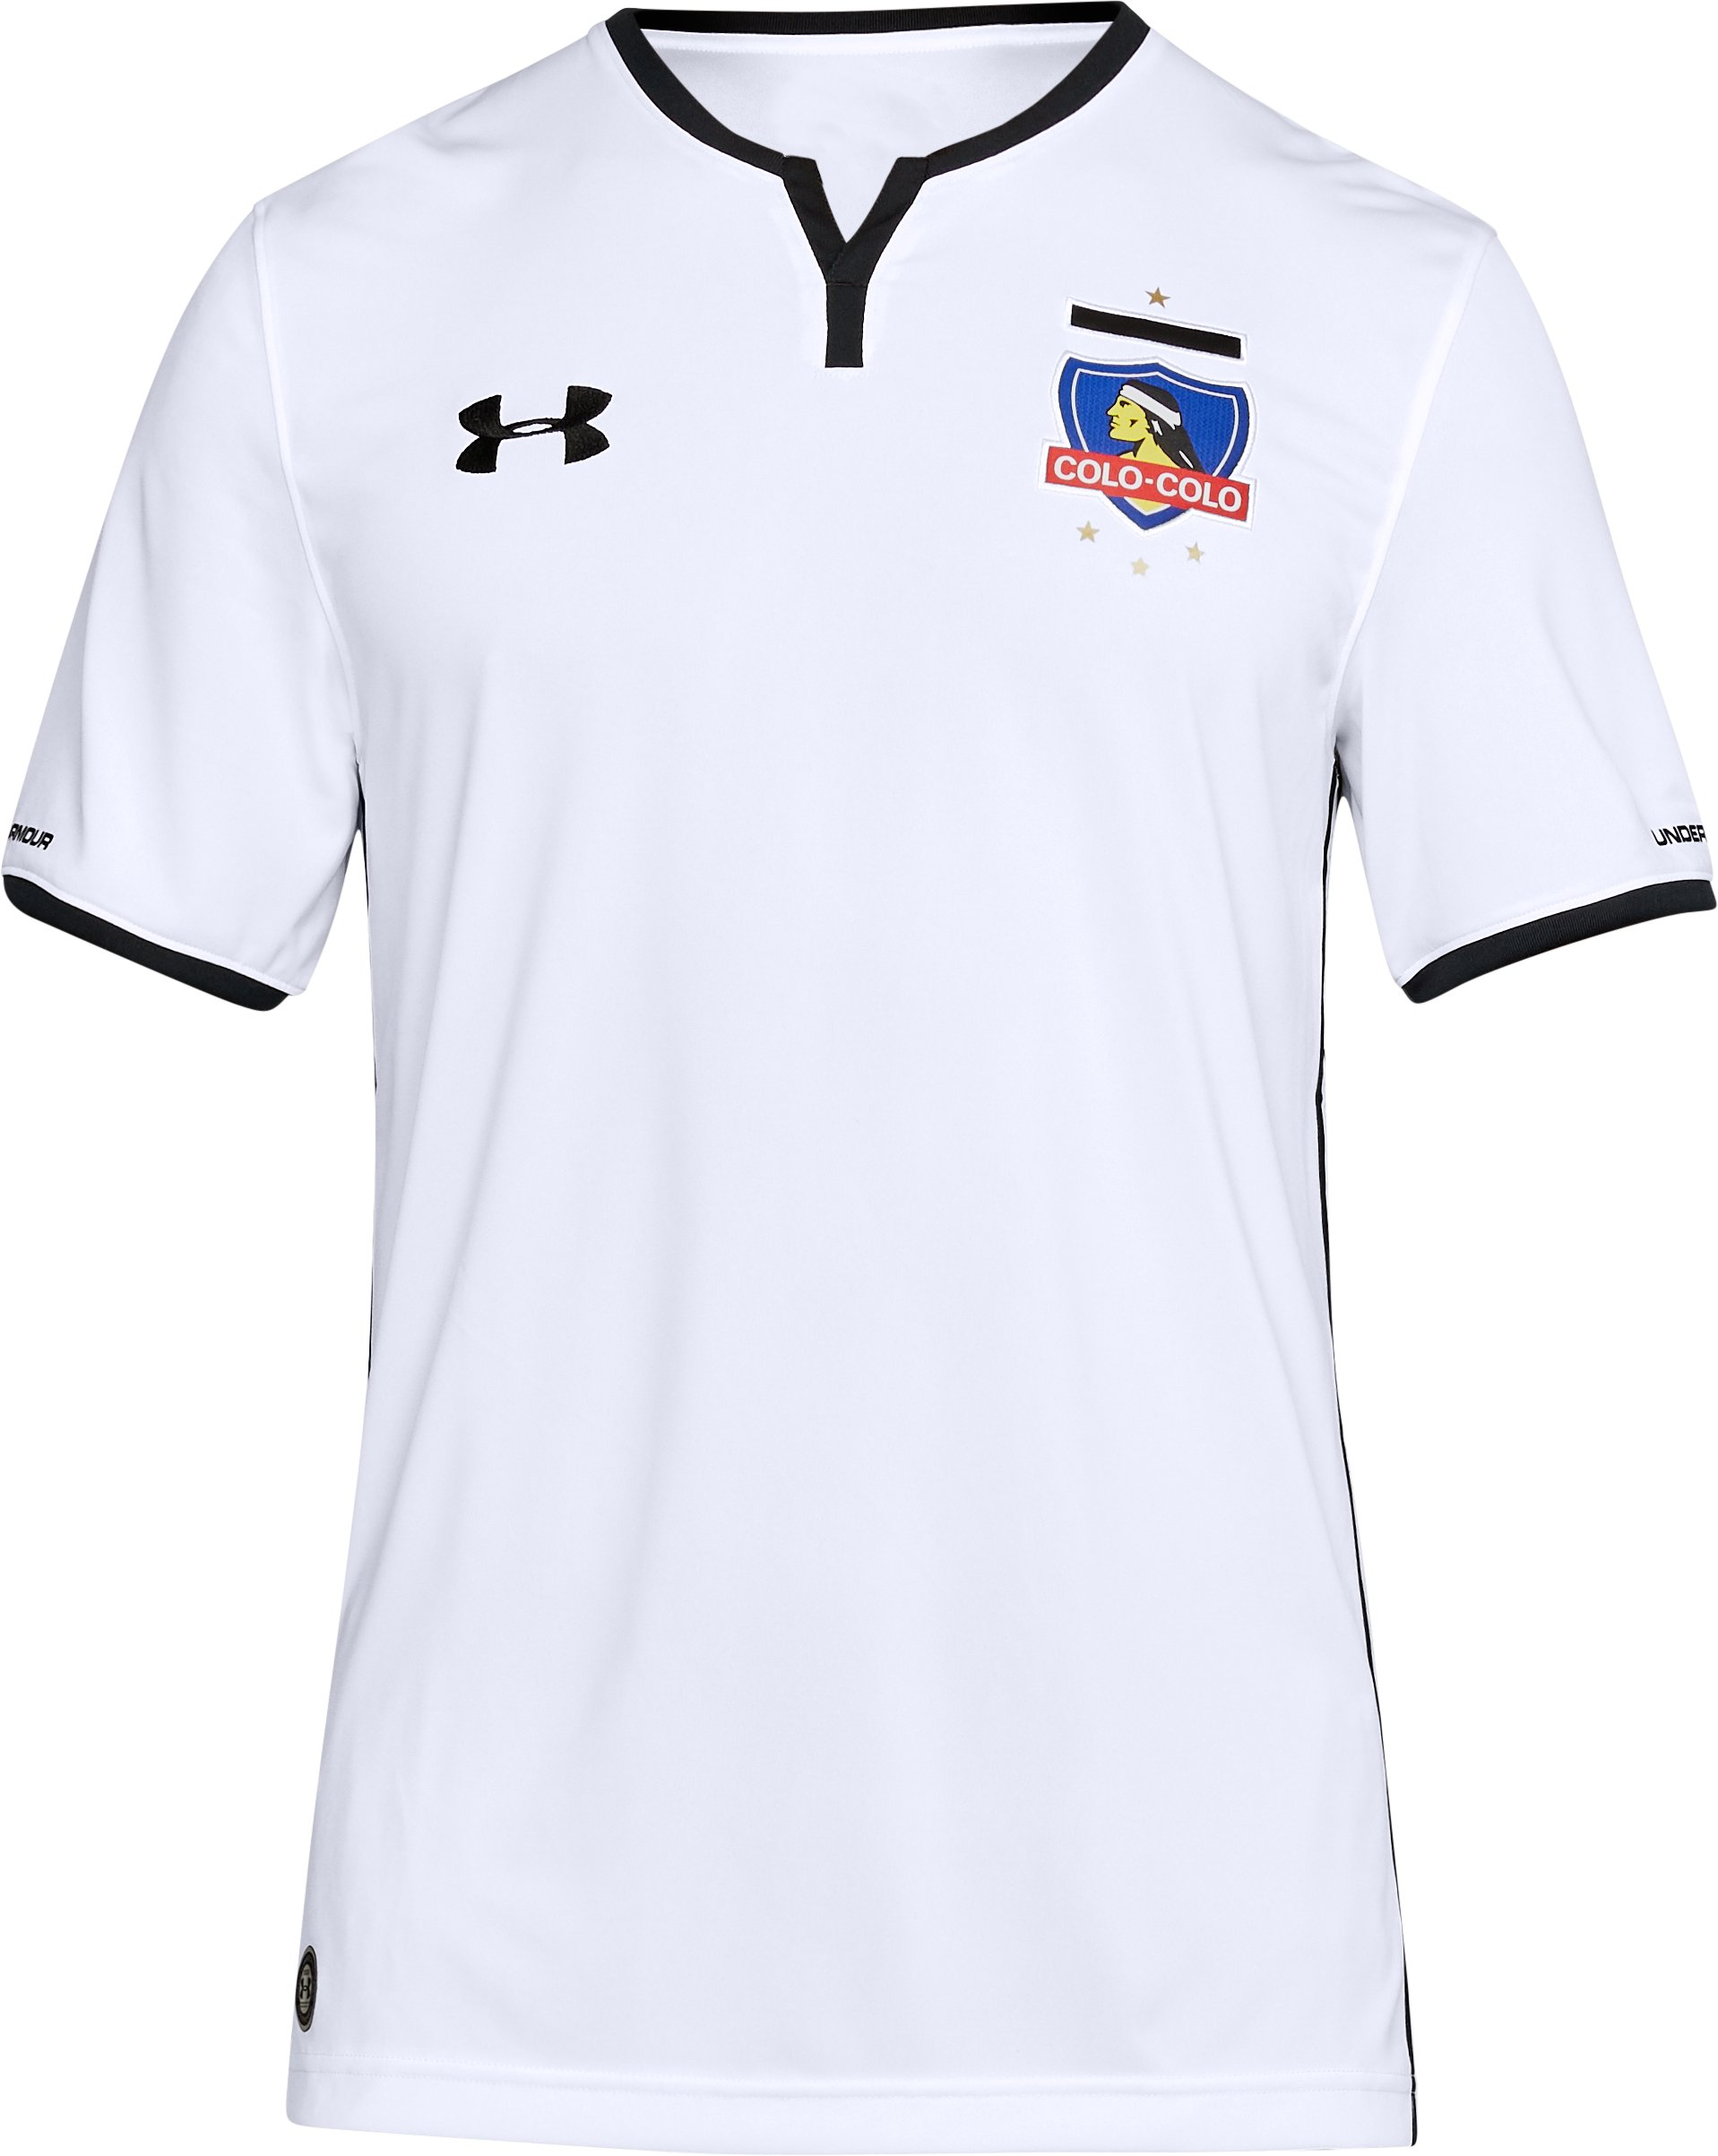 Men's Colo-Colo Home Replica Jersey, White, undefined